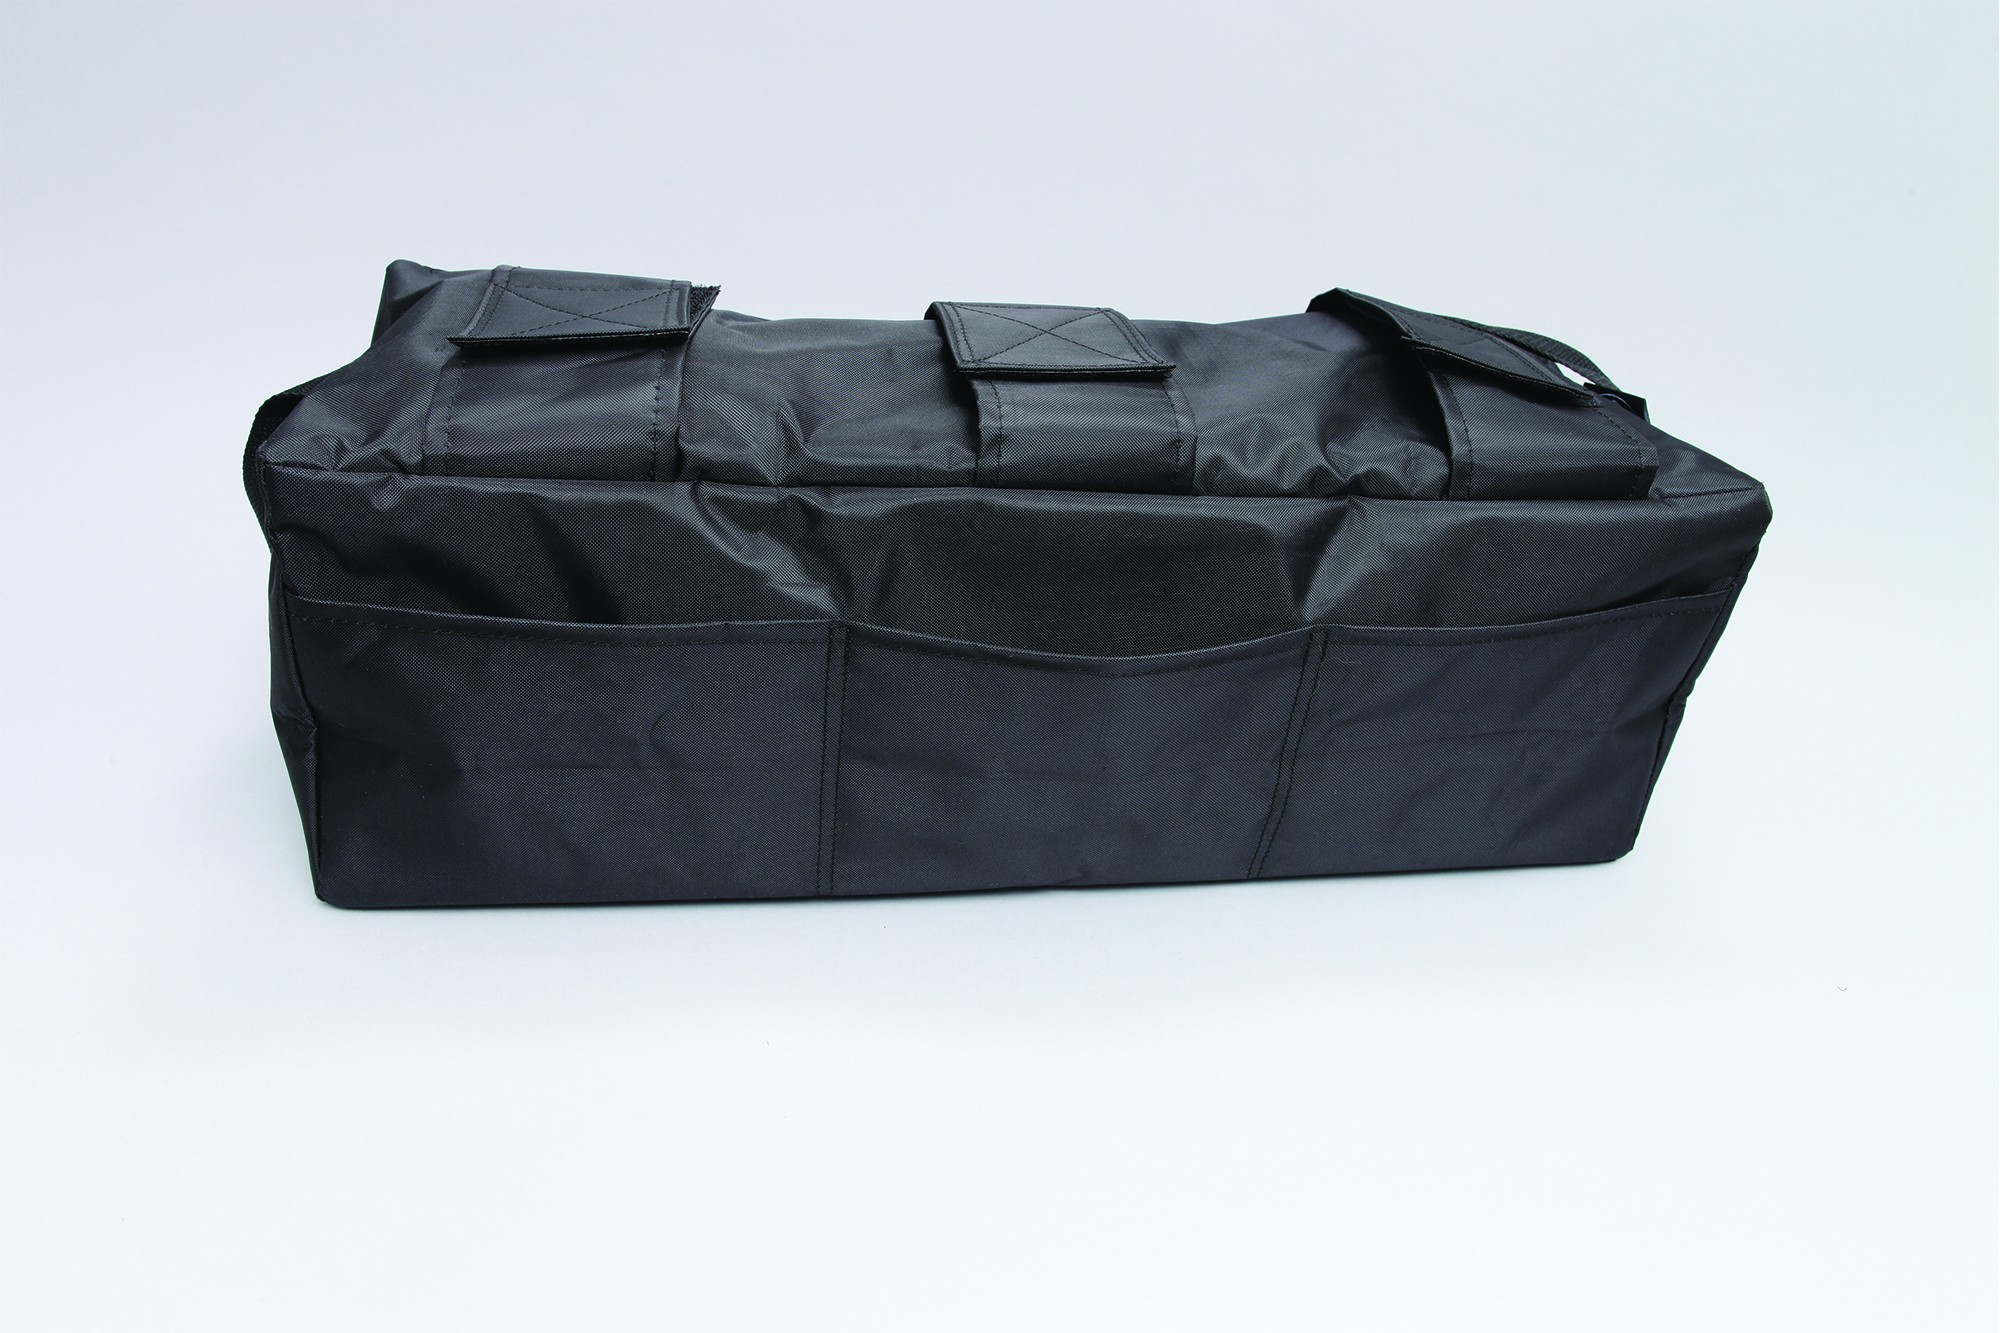 Remarkable Under Seat Bench Storage Bag For Inflatable Dinghy Small 55X20X16Cm Cjindustries Chair Design For Home Cjindustriesco